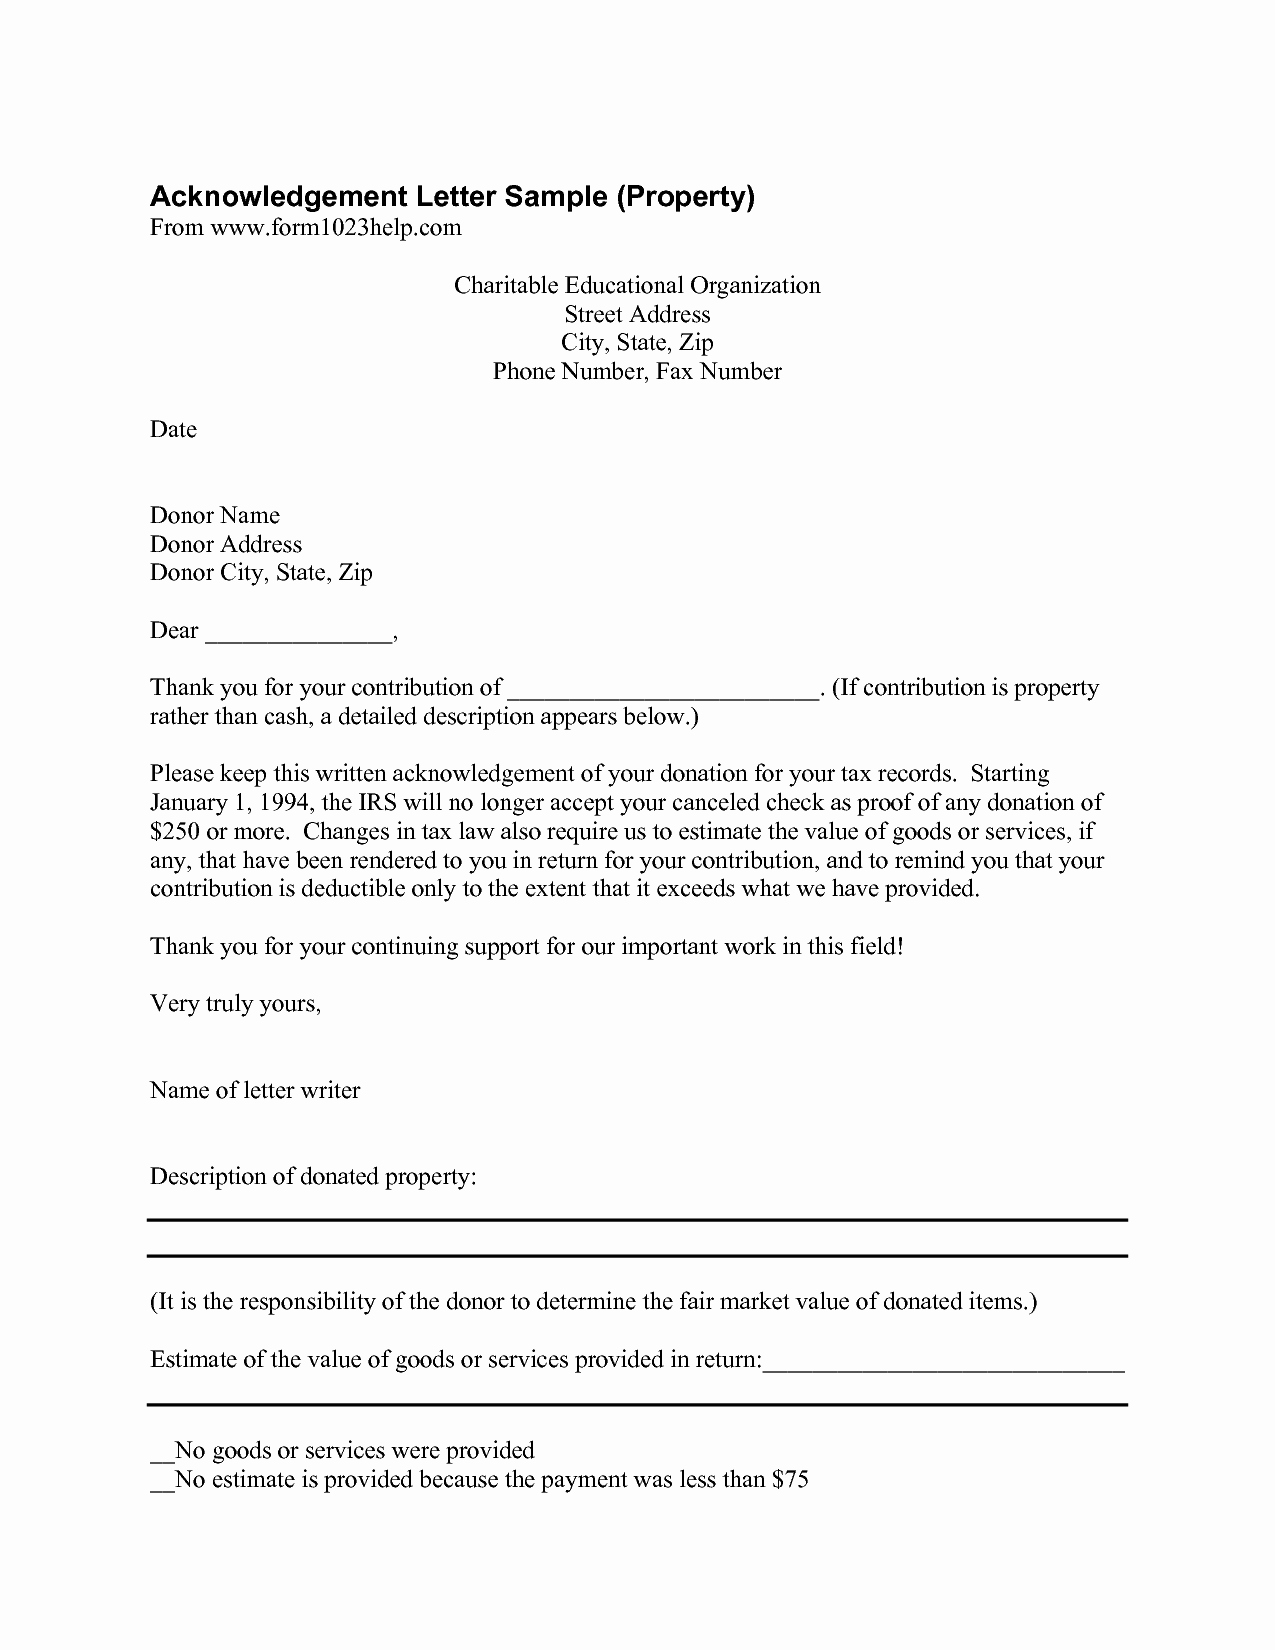 Donation Request Letter Template Luxury Contribution Donation Letter the Contribution Letter